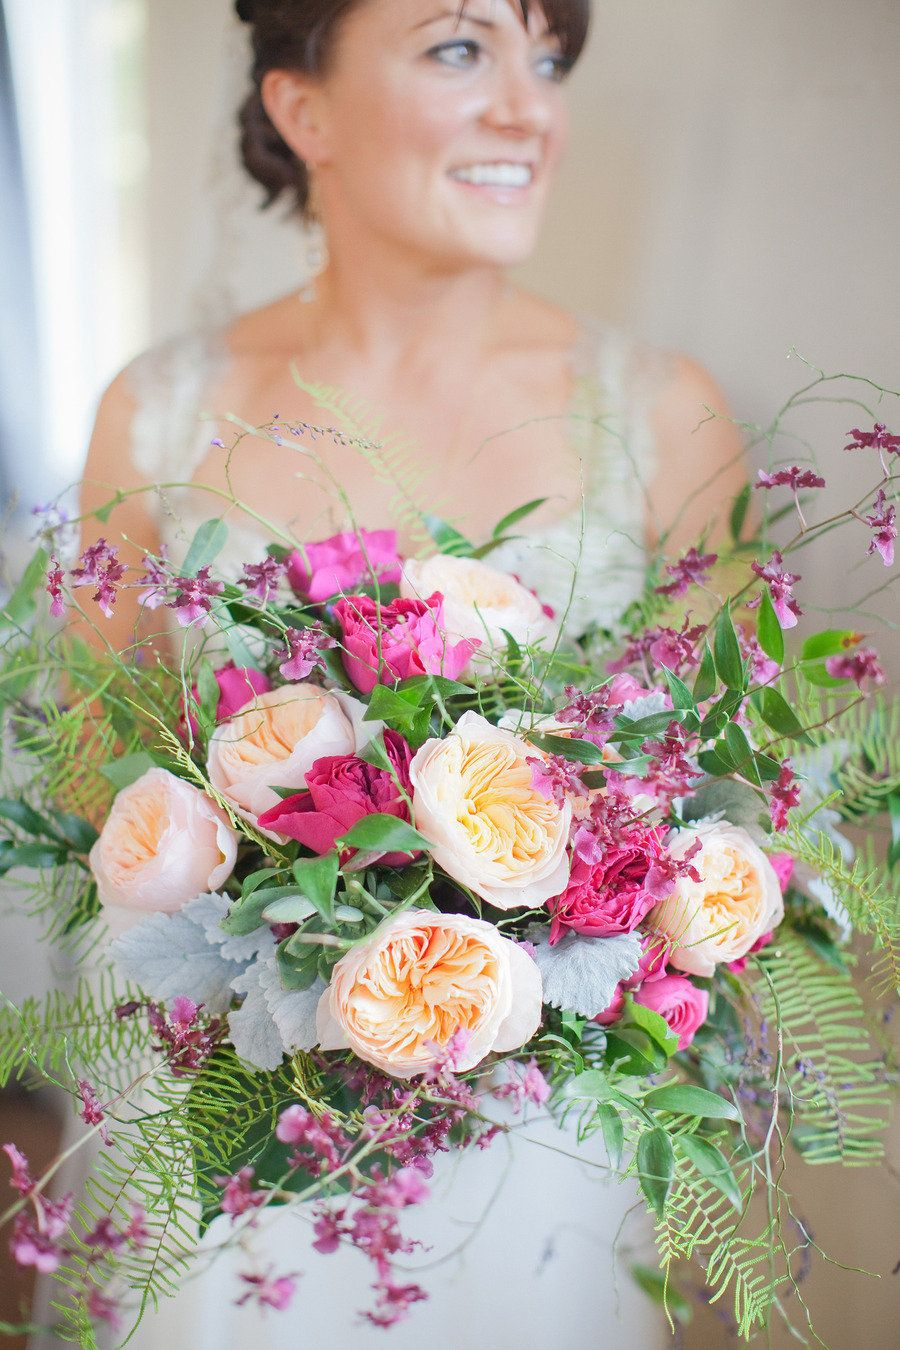 Bridal bouquet deliciousness!!   B#gardenroses, #bouquet | Photography: Lori Paladino | See More on SMP: http://stylemepretty.com/2013/05/21/sausalito-wedding-from-lori-paladino-photography/